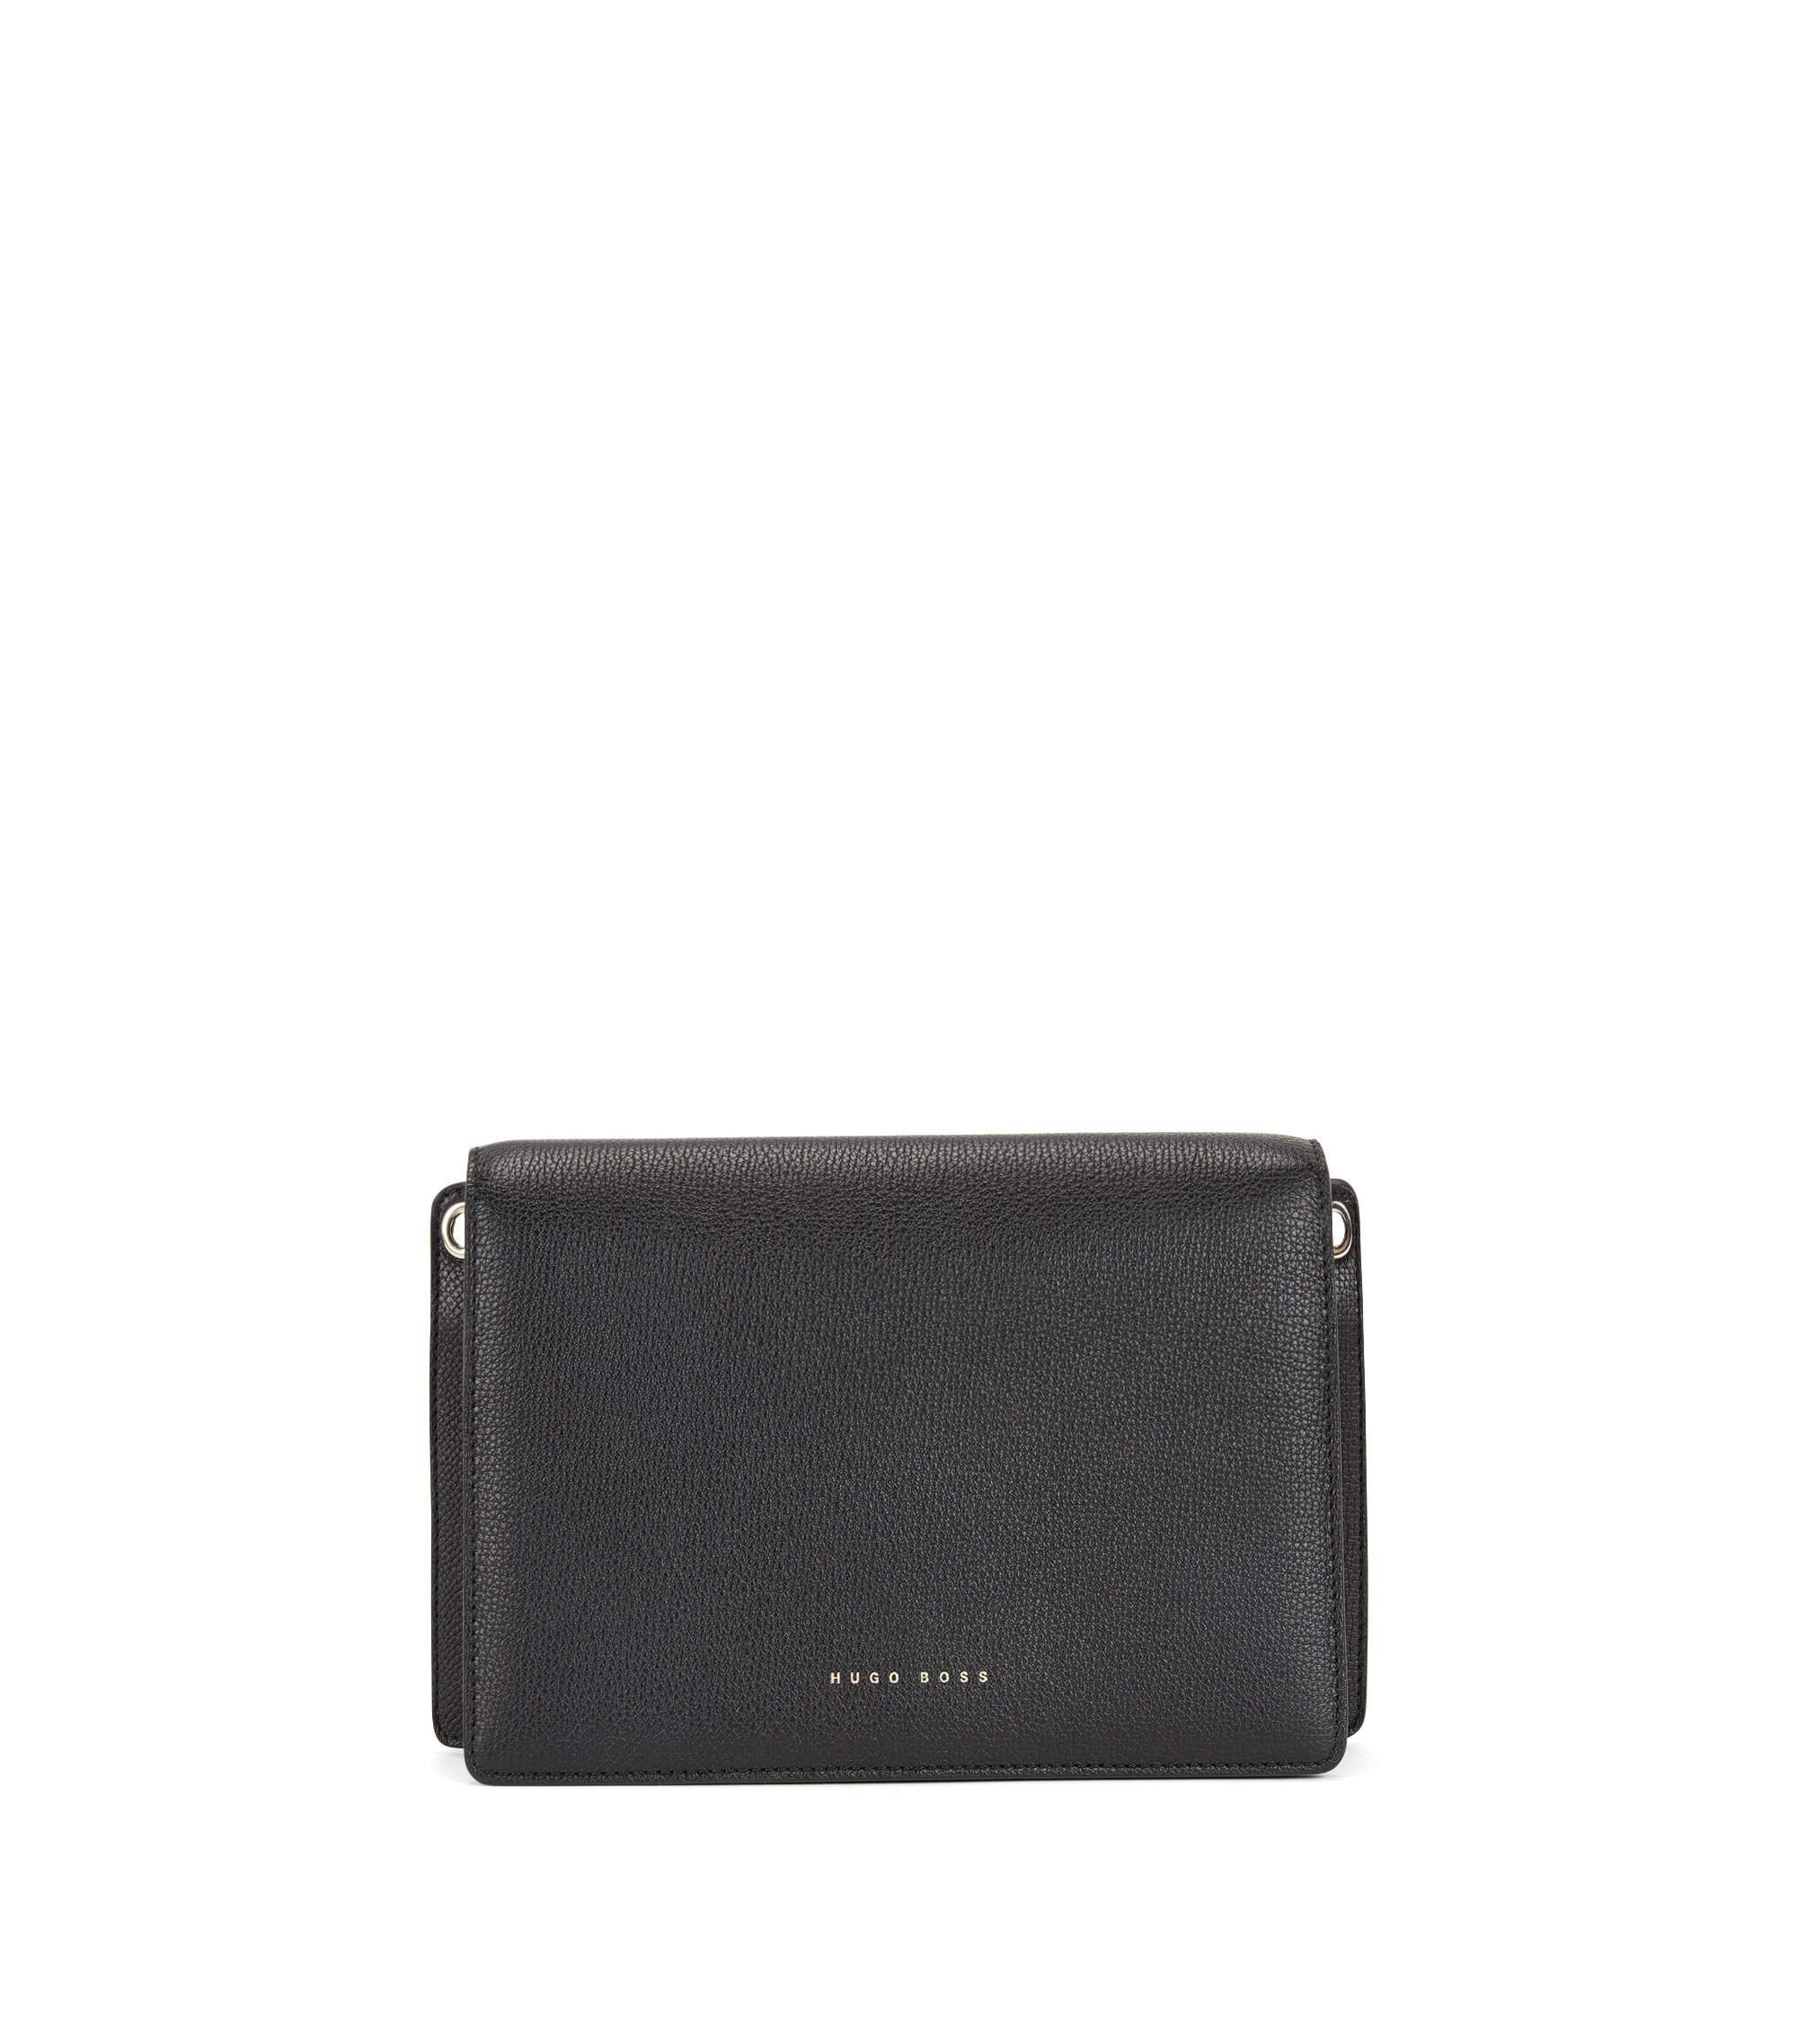 Crossbody bag in grained Italian calf leather, Black